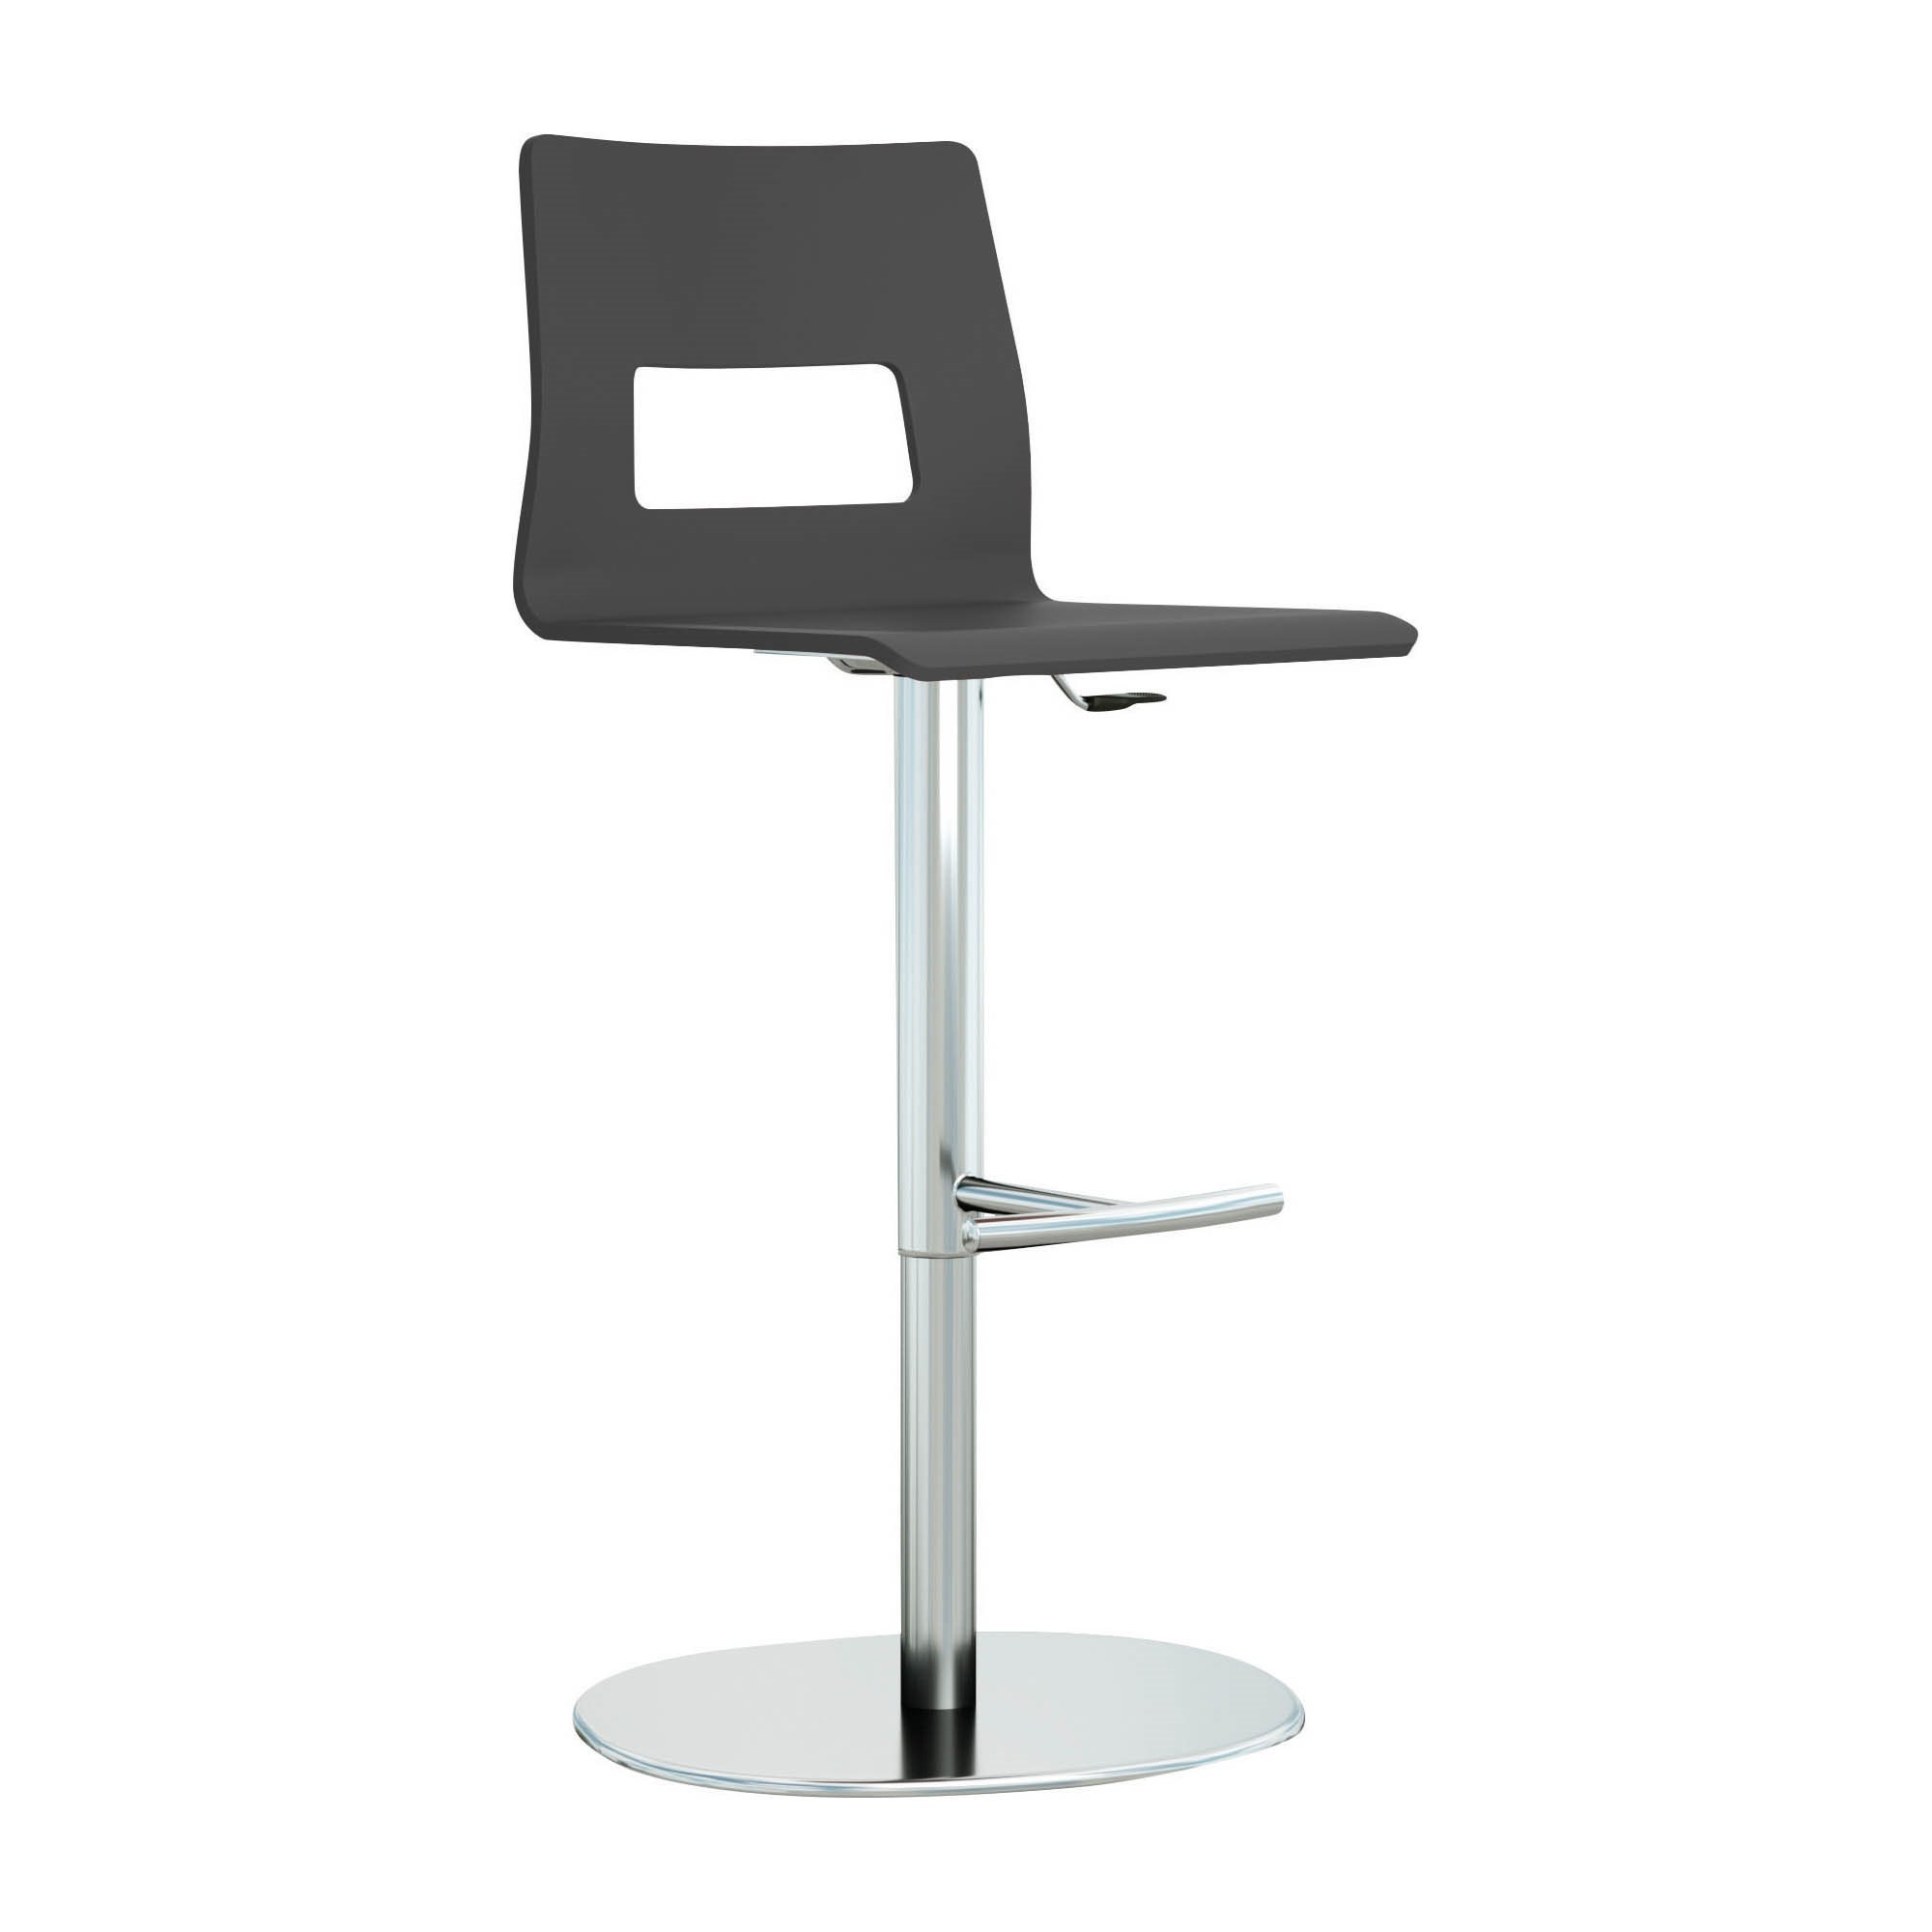 Stool Celsio - central foot